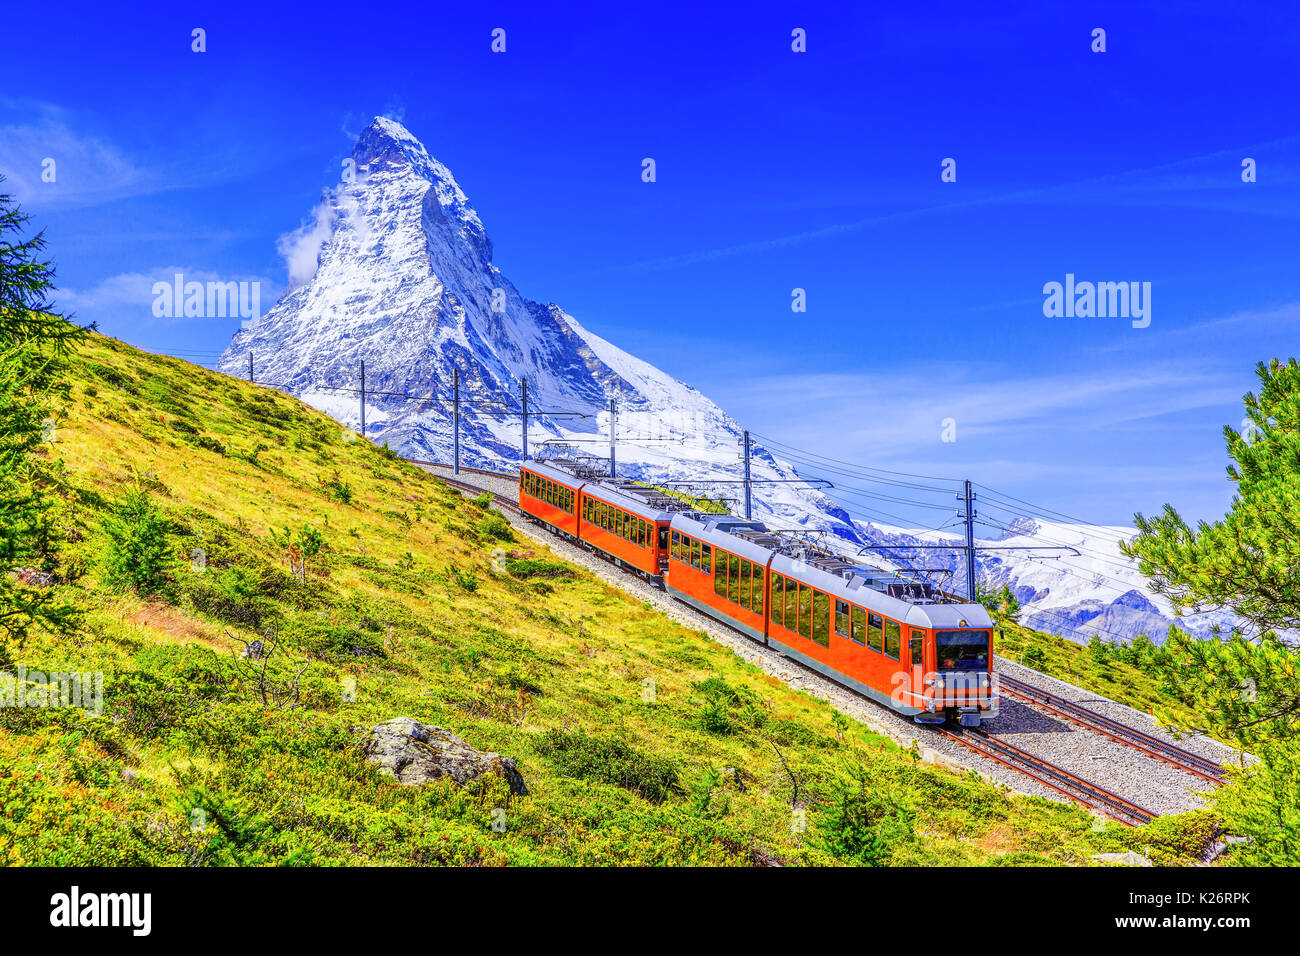 Zermatt, Svizzera. Gornergrat treno turistico con il monte Cervino in background. Regione del Canton Vallese. Immagini Stock